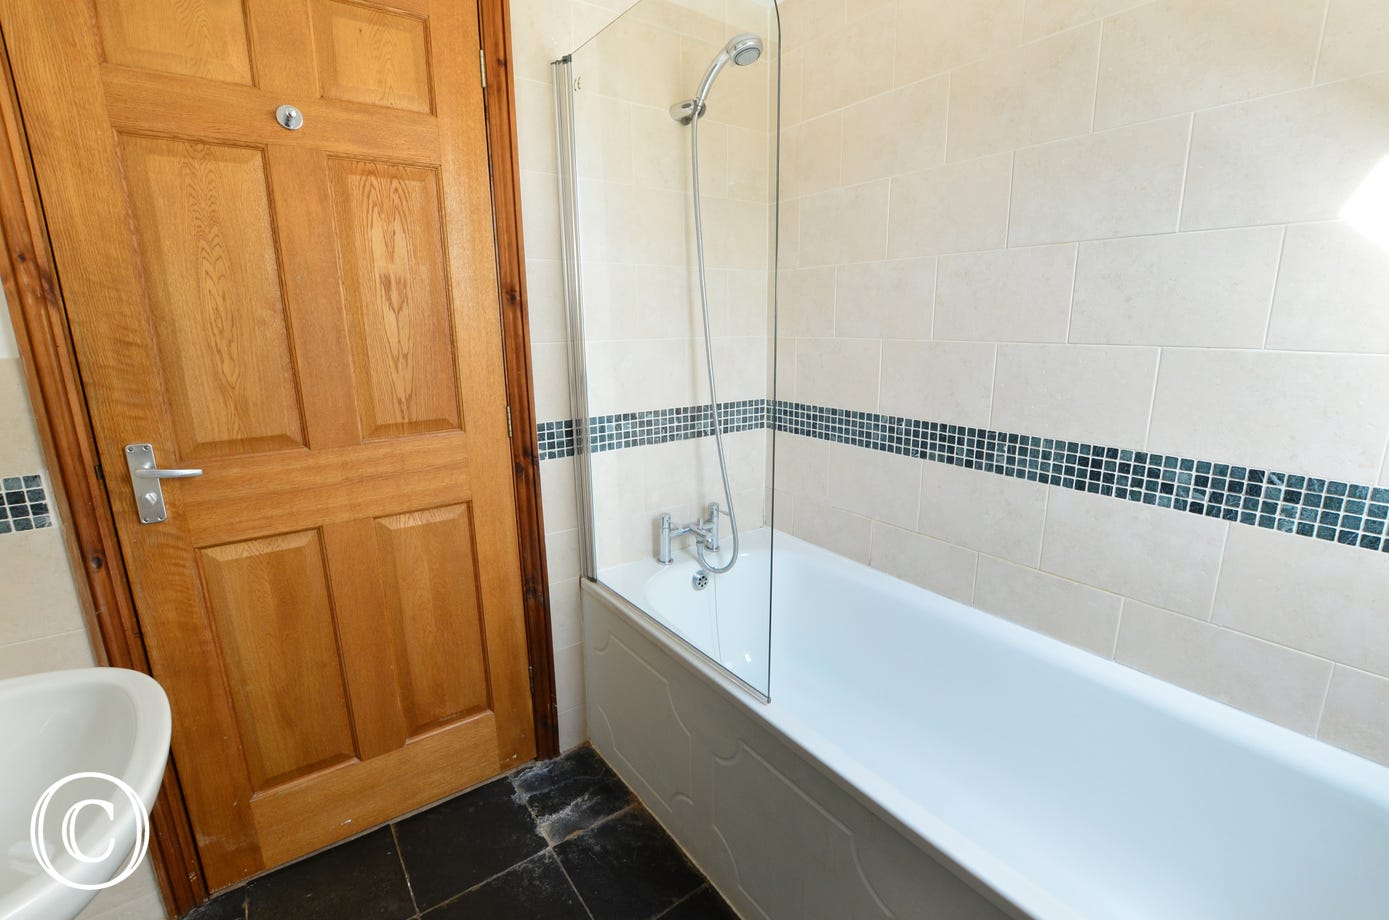 The family bathroom is on the first floor and is attractively tiled with a bath and an over bath shower